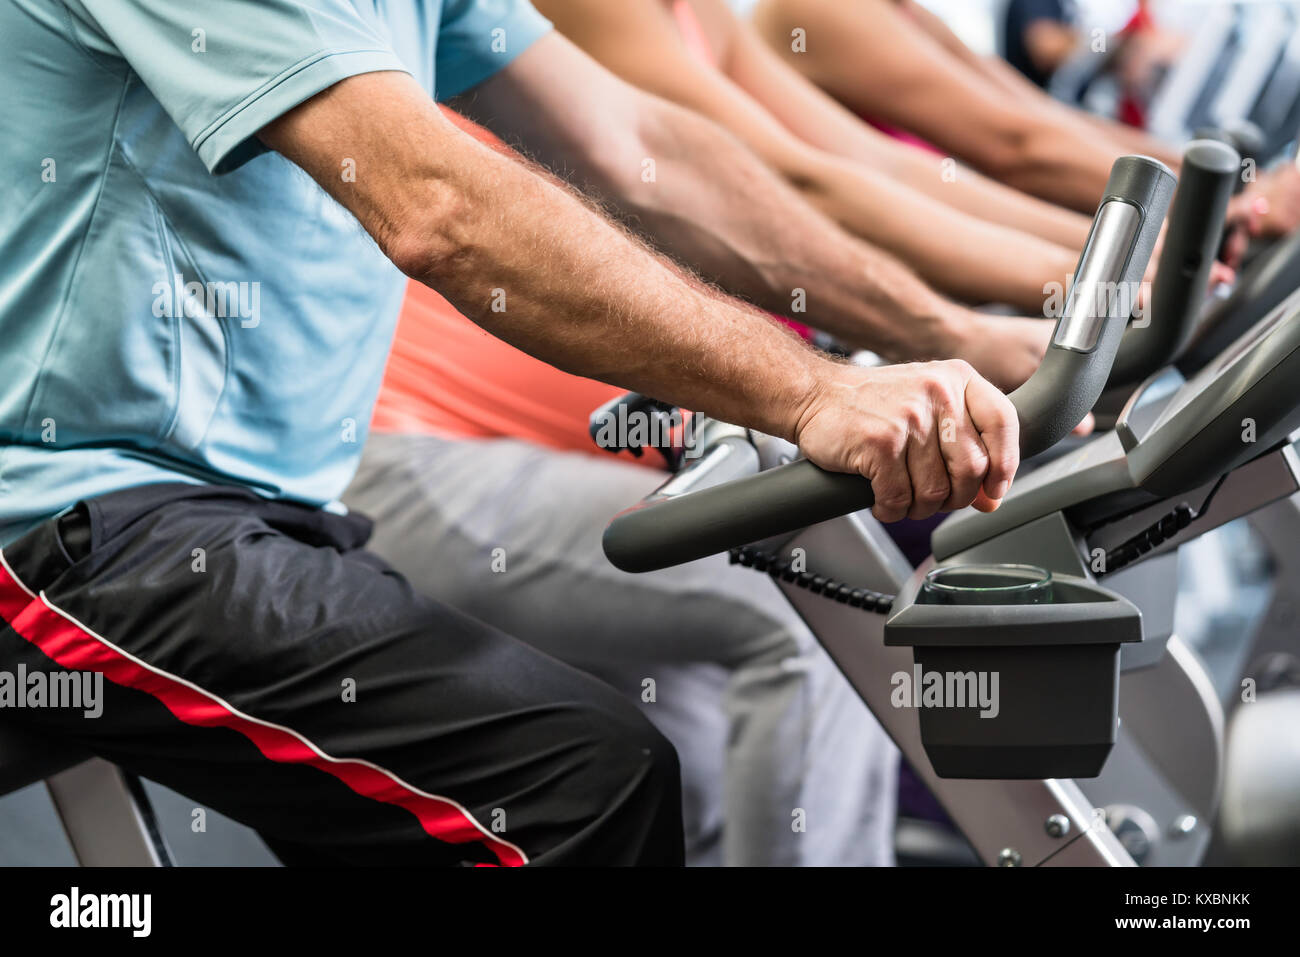 Group spinning at the gym on fitness bikes  - Stock Image